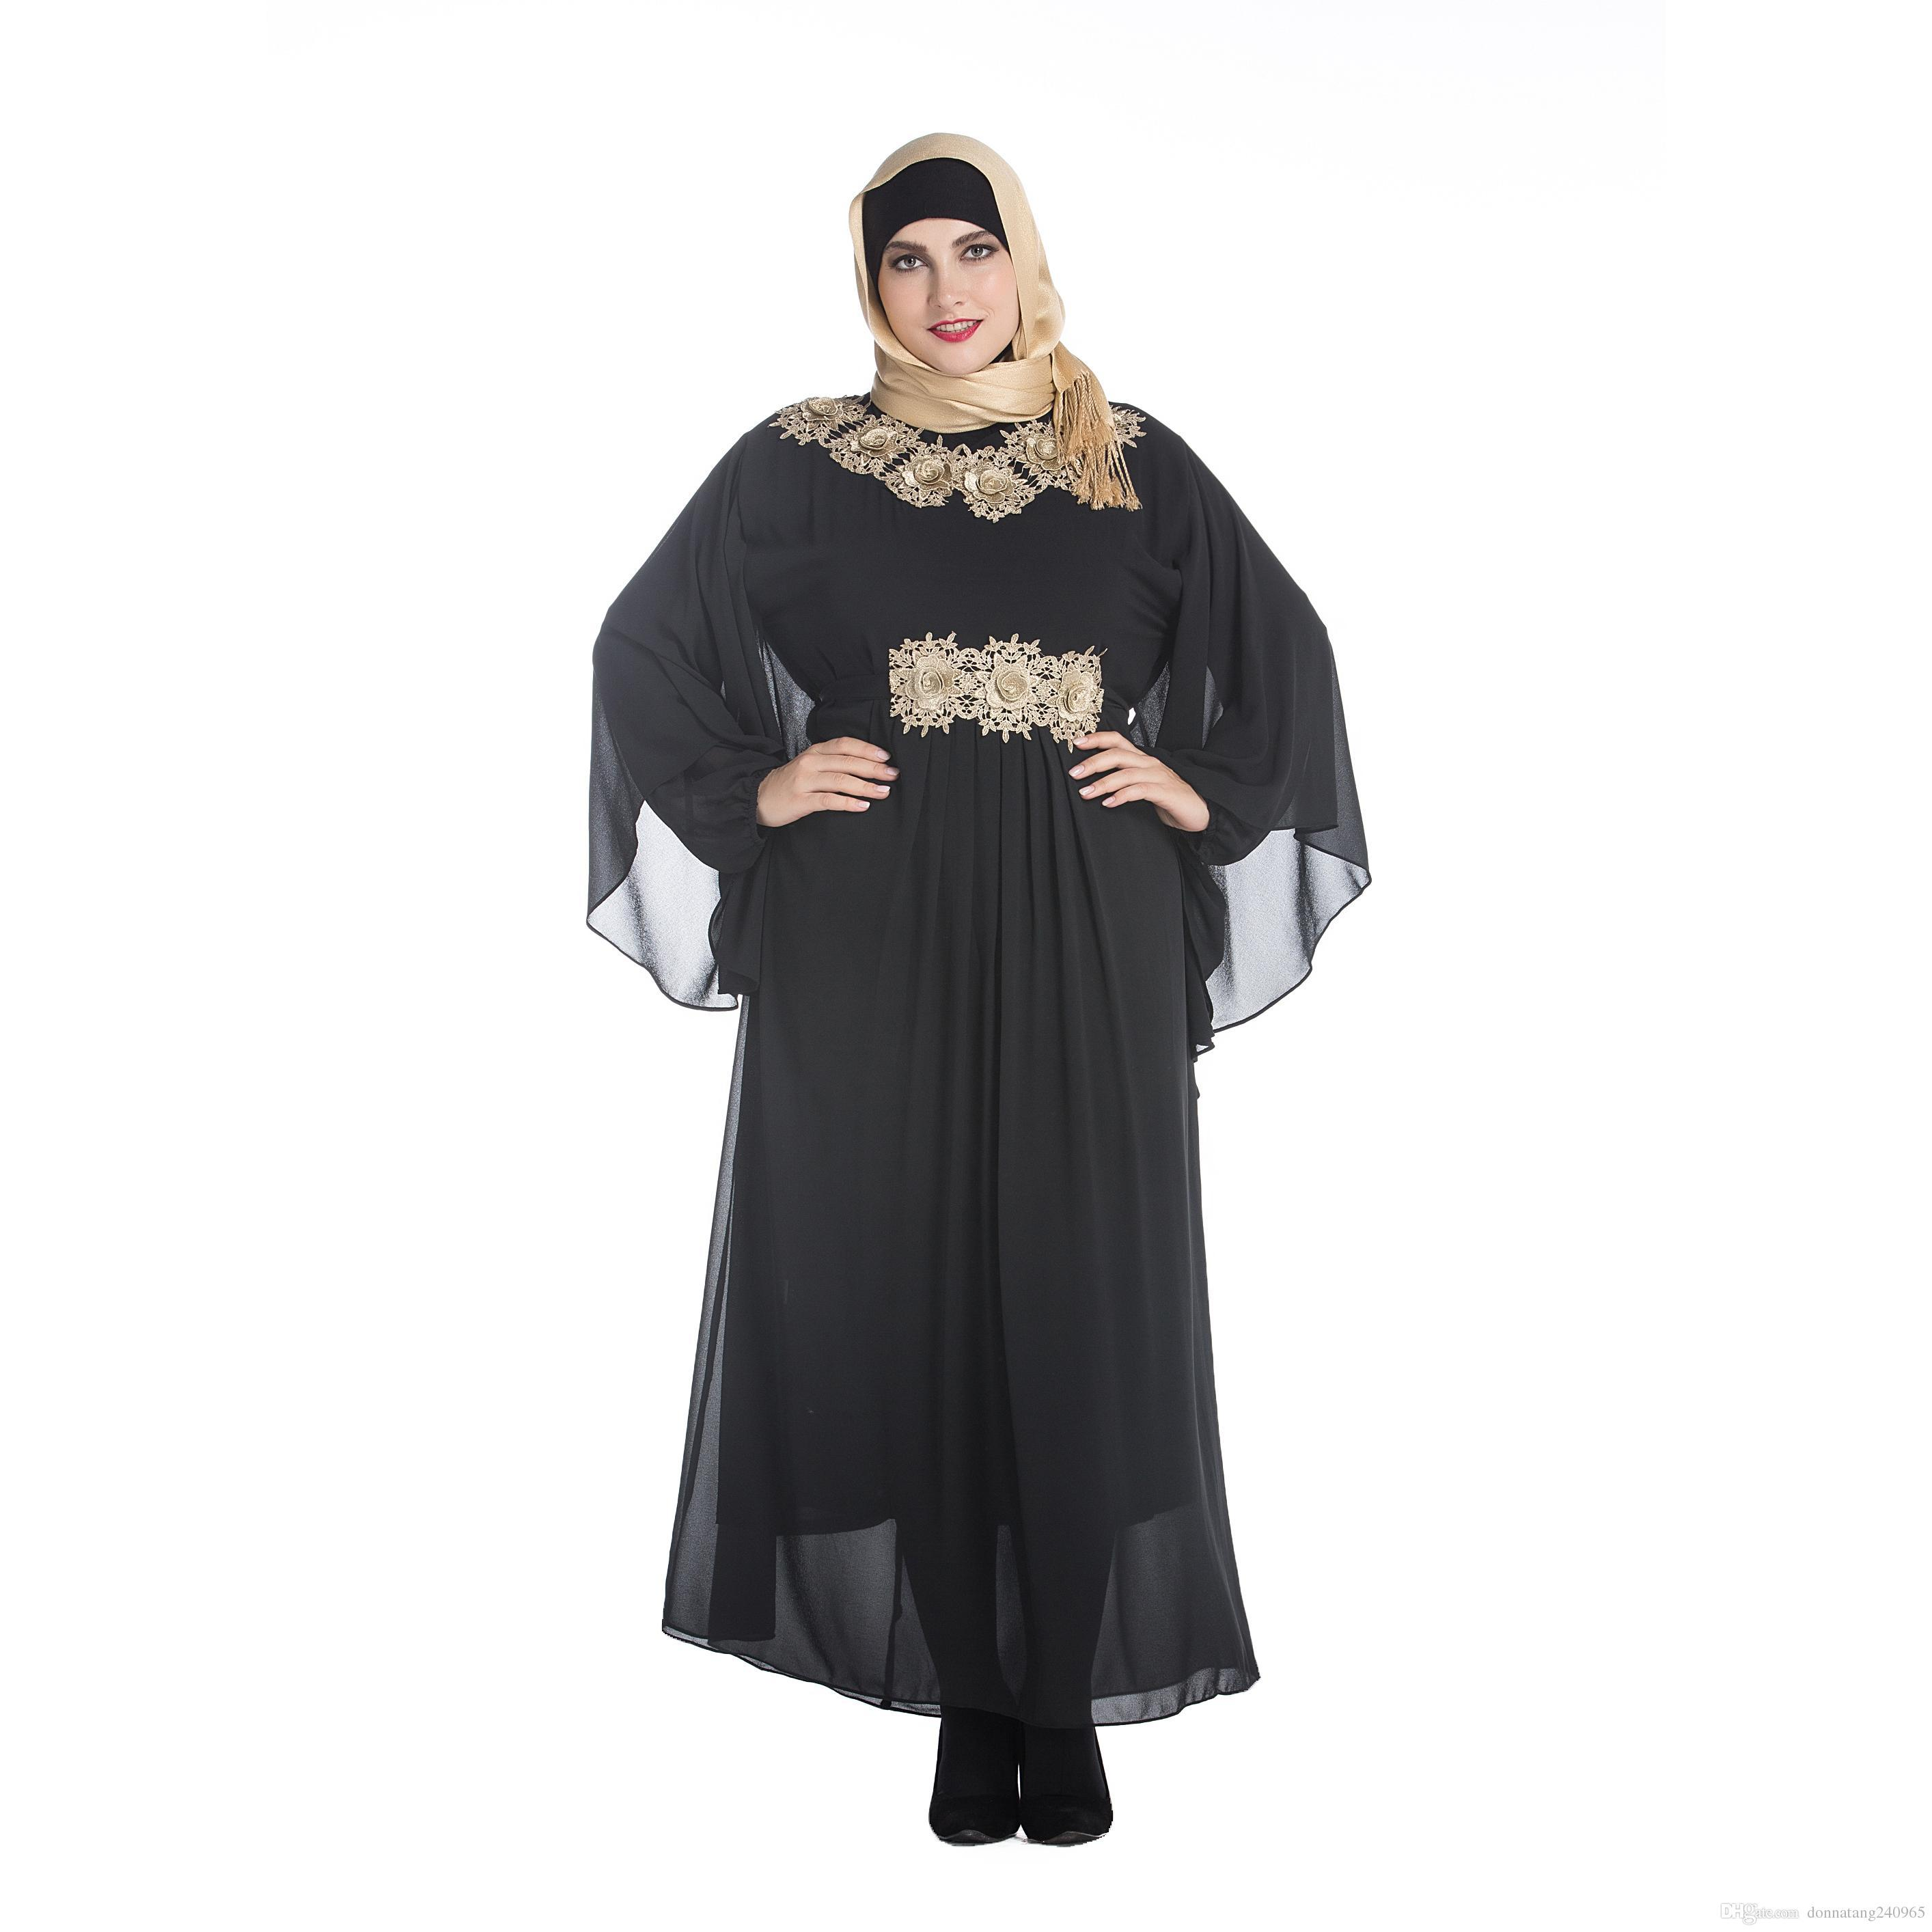 86134488fcf2 Acquista Big Size Fat Women Abbigliamento Musulmano Decal Malaysia Arab  Robes Medio Oriente Femmina Pipistrelli Manica Lunga Plus Size Maxi Abito  In Chiffon ...